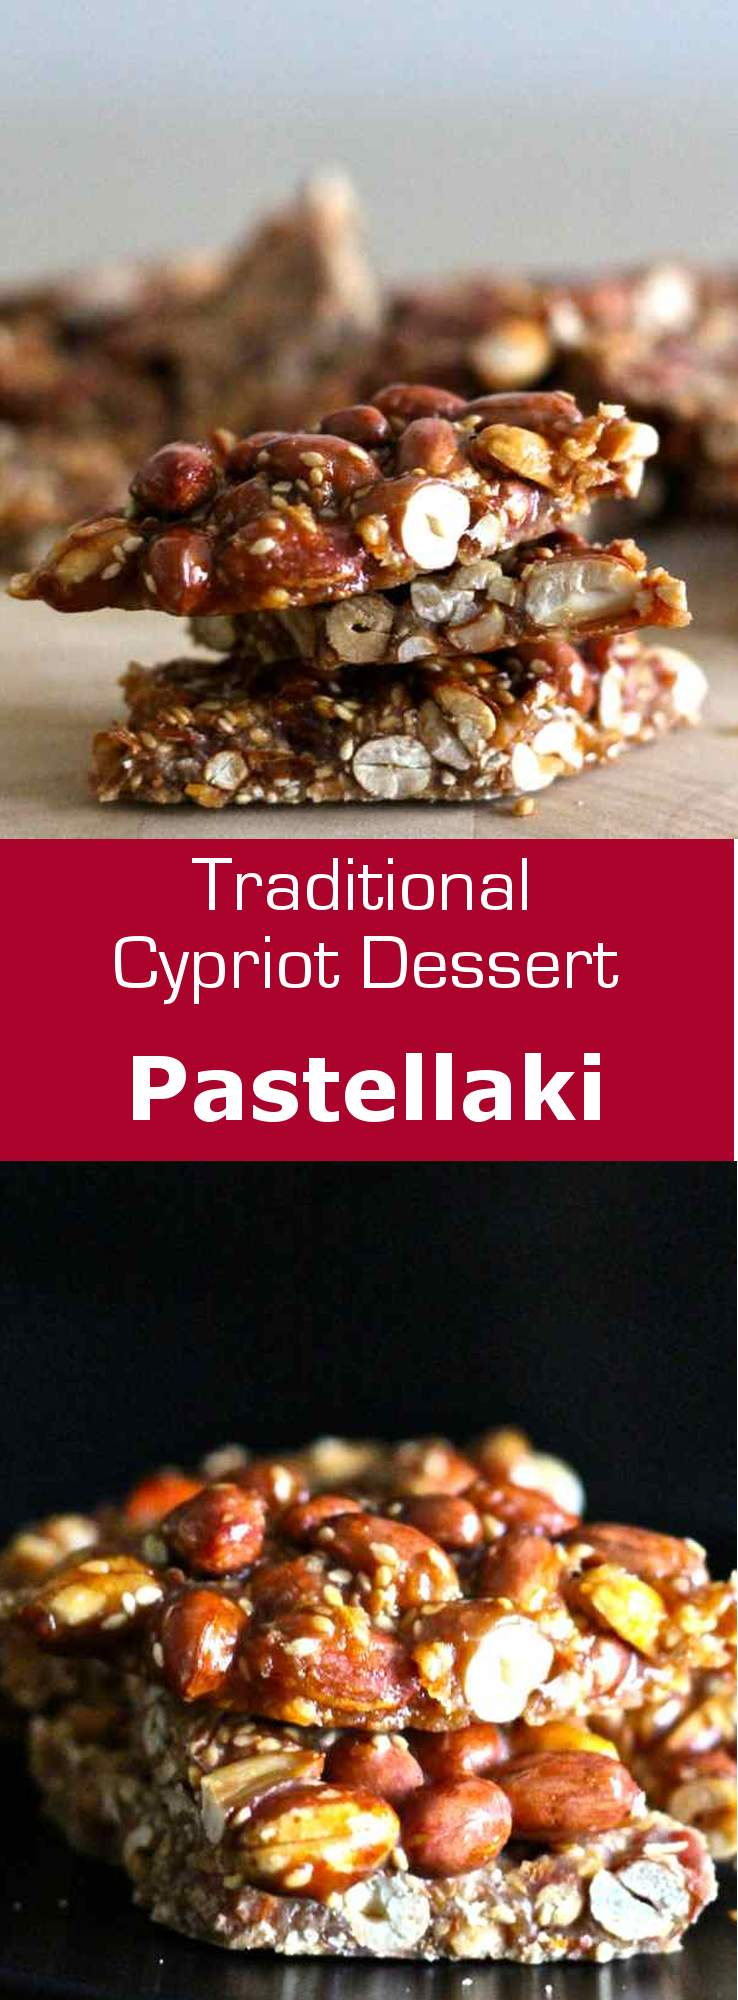 Pastellaki is a traditional sesame seed and peanut candy from Cyprus. #dessert #snack #candy #vegetarian #vegan #glutenfree #cyprus